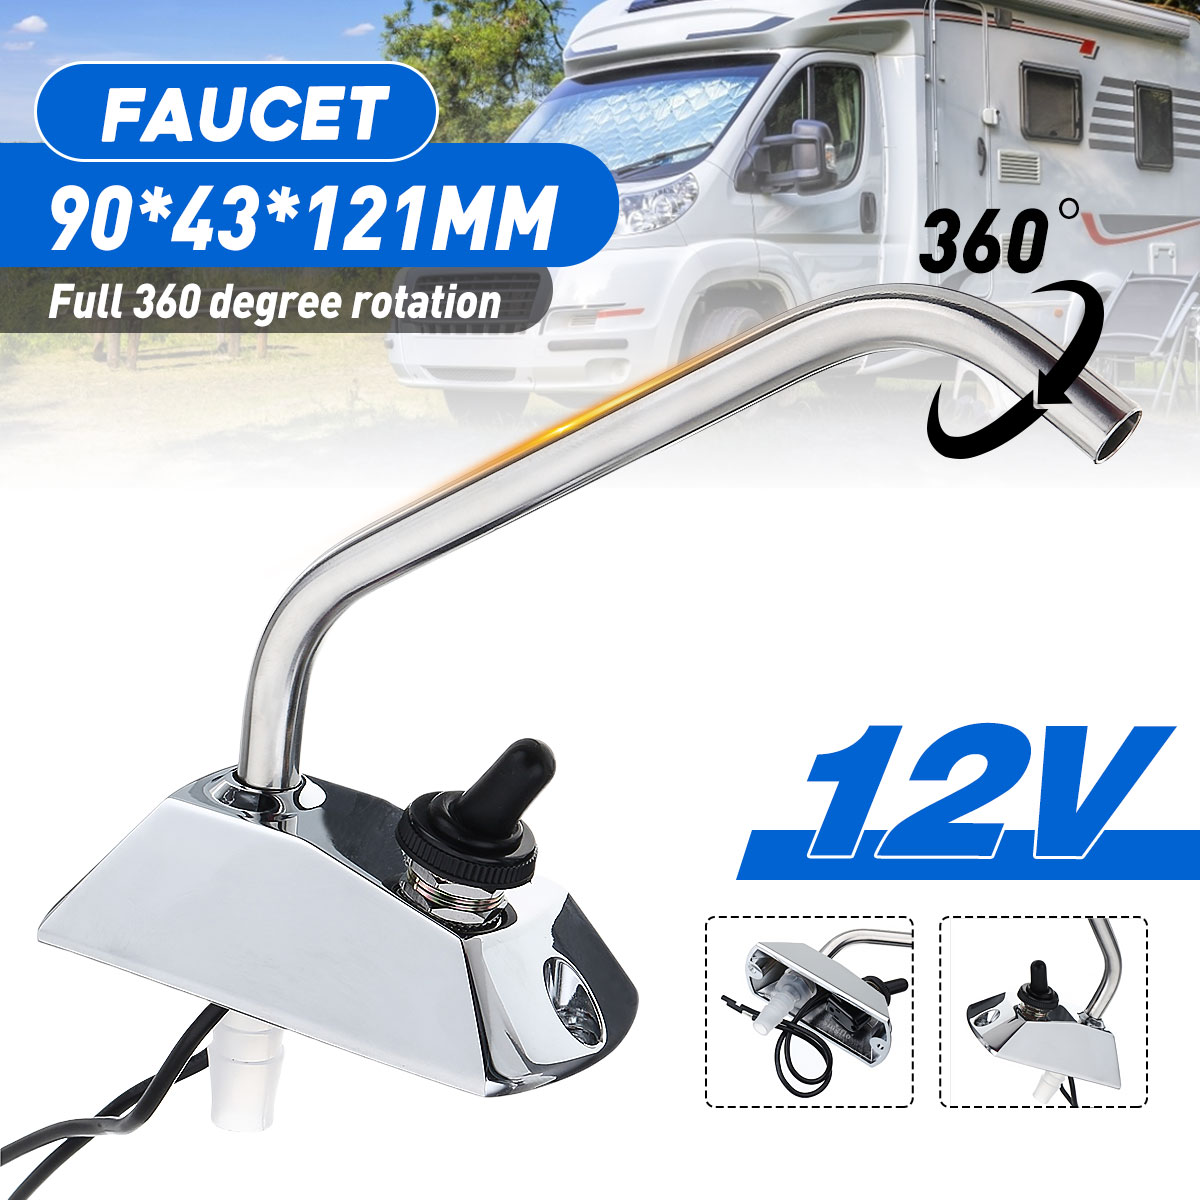 Full 360 Degree Rotation 12V Galley Faucet Tap With Switch For Caravan Boat Motorhome RV Marine Hardware Zinc-alloy Metal